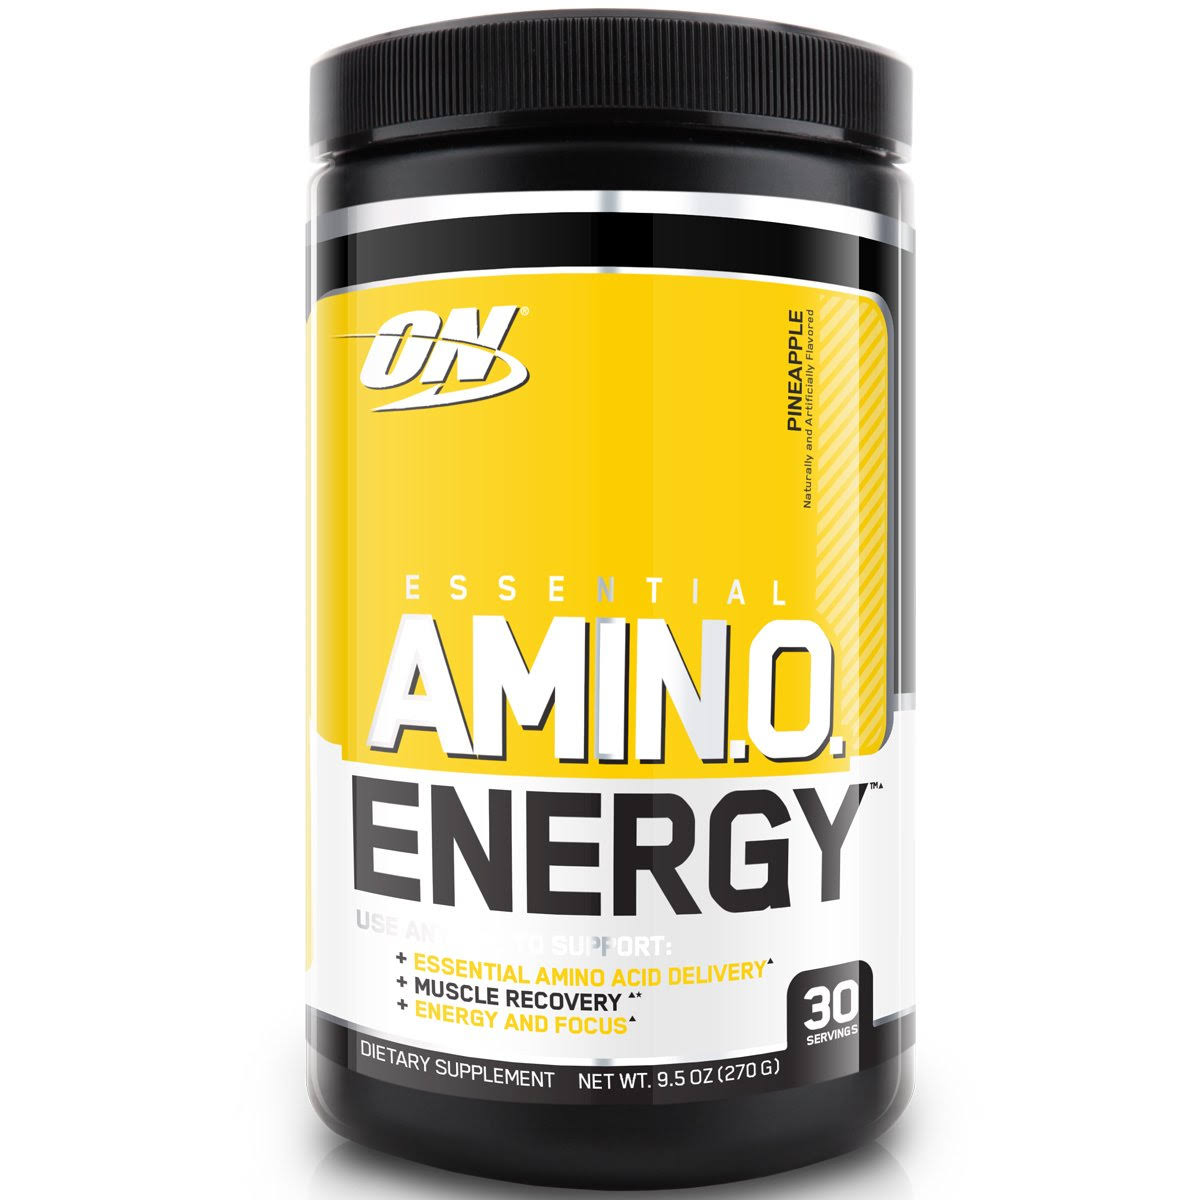 Optimum Nutrition Essential Amino Energy Powder Supplement - Pineapple, 270g